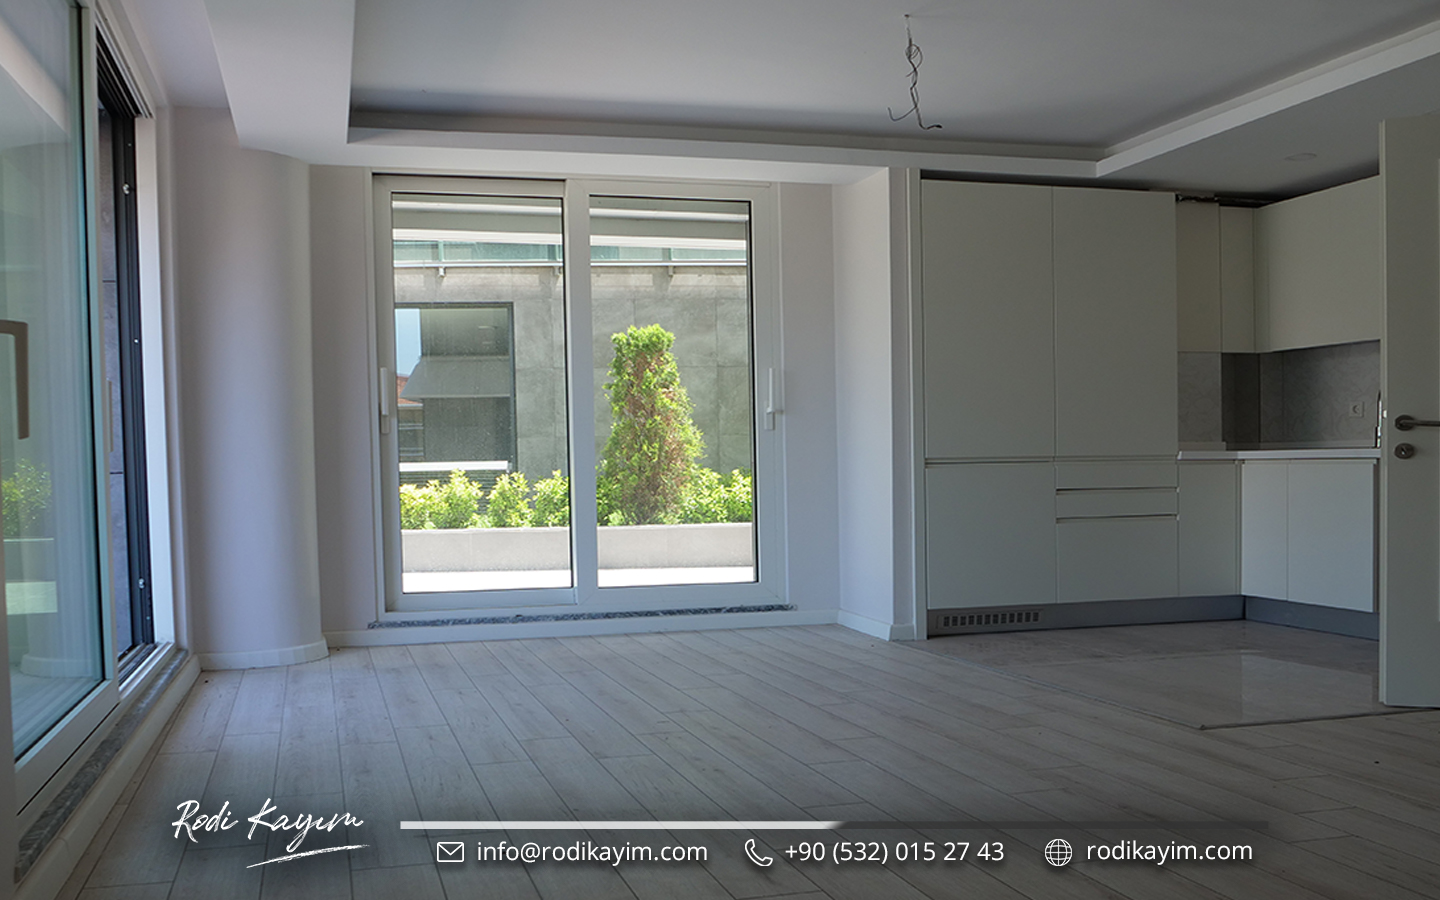 Yildiz Park apartments for sale in istanbul 21